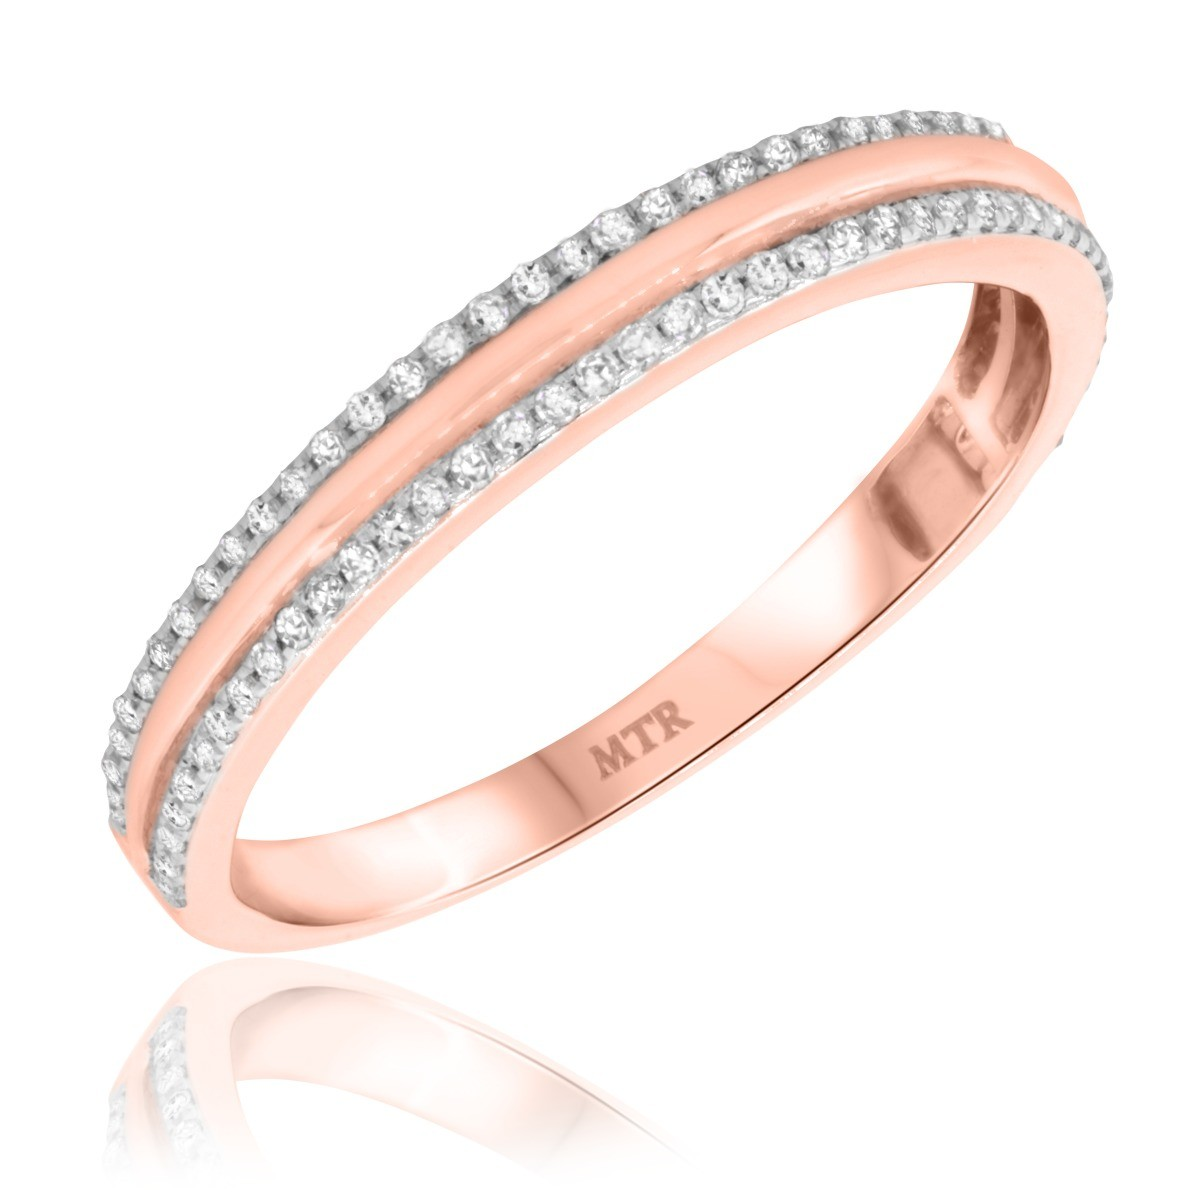 1/3 Carat T.W. Diamond Mens Wedding Band  14K Rose Gold